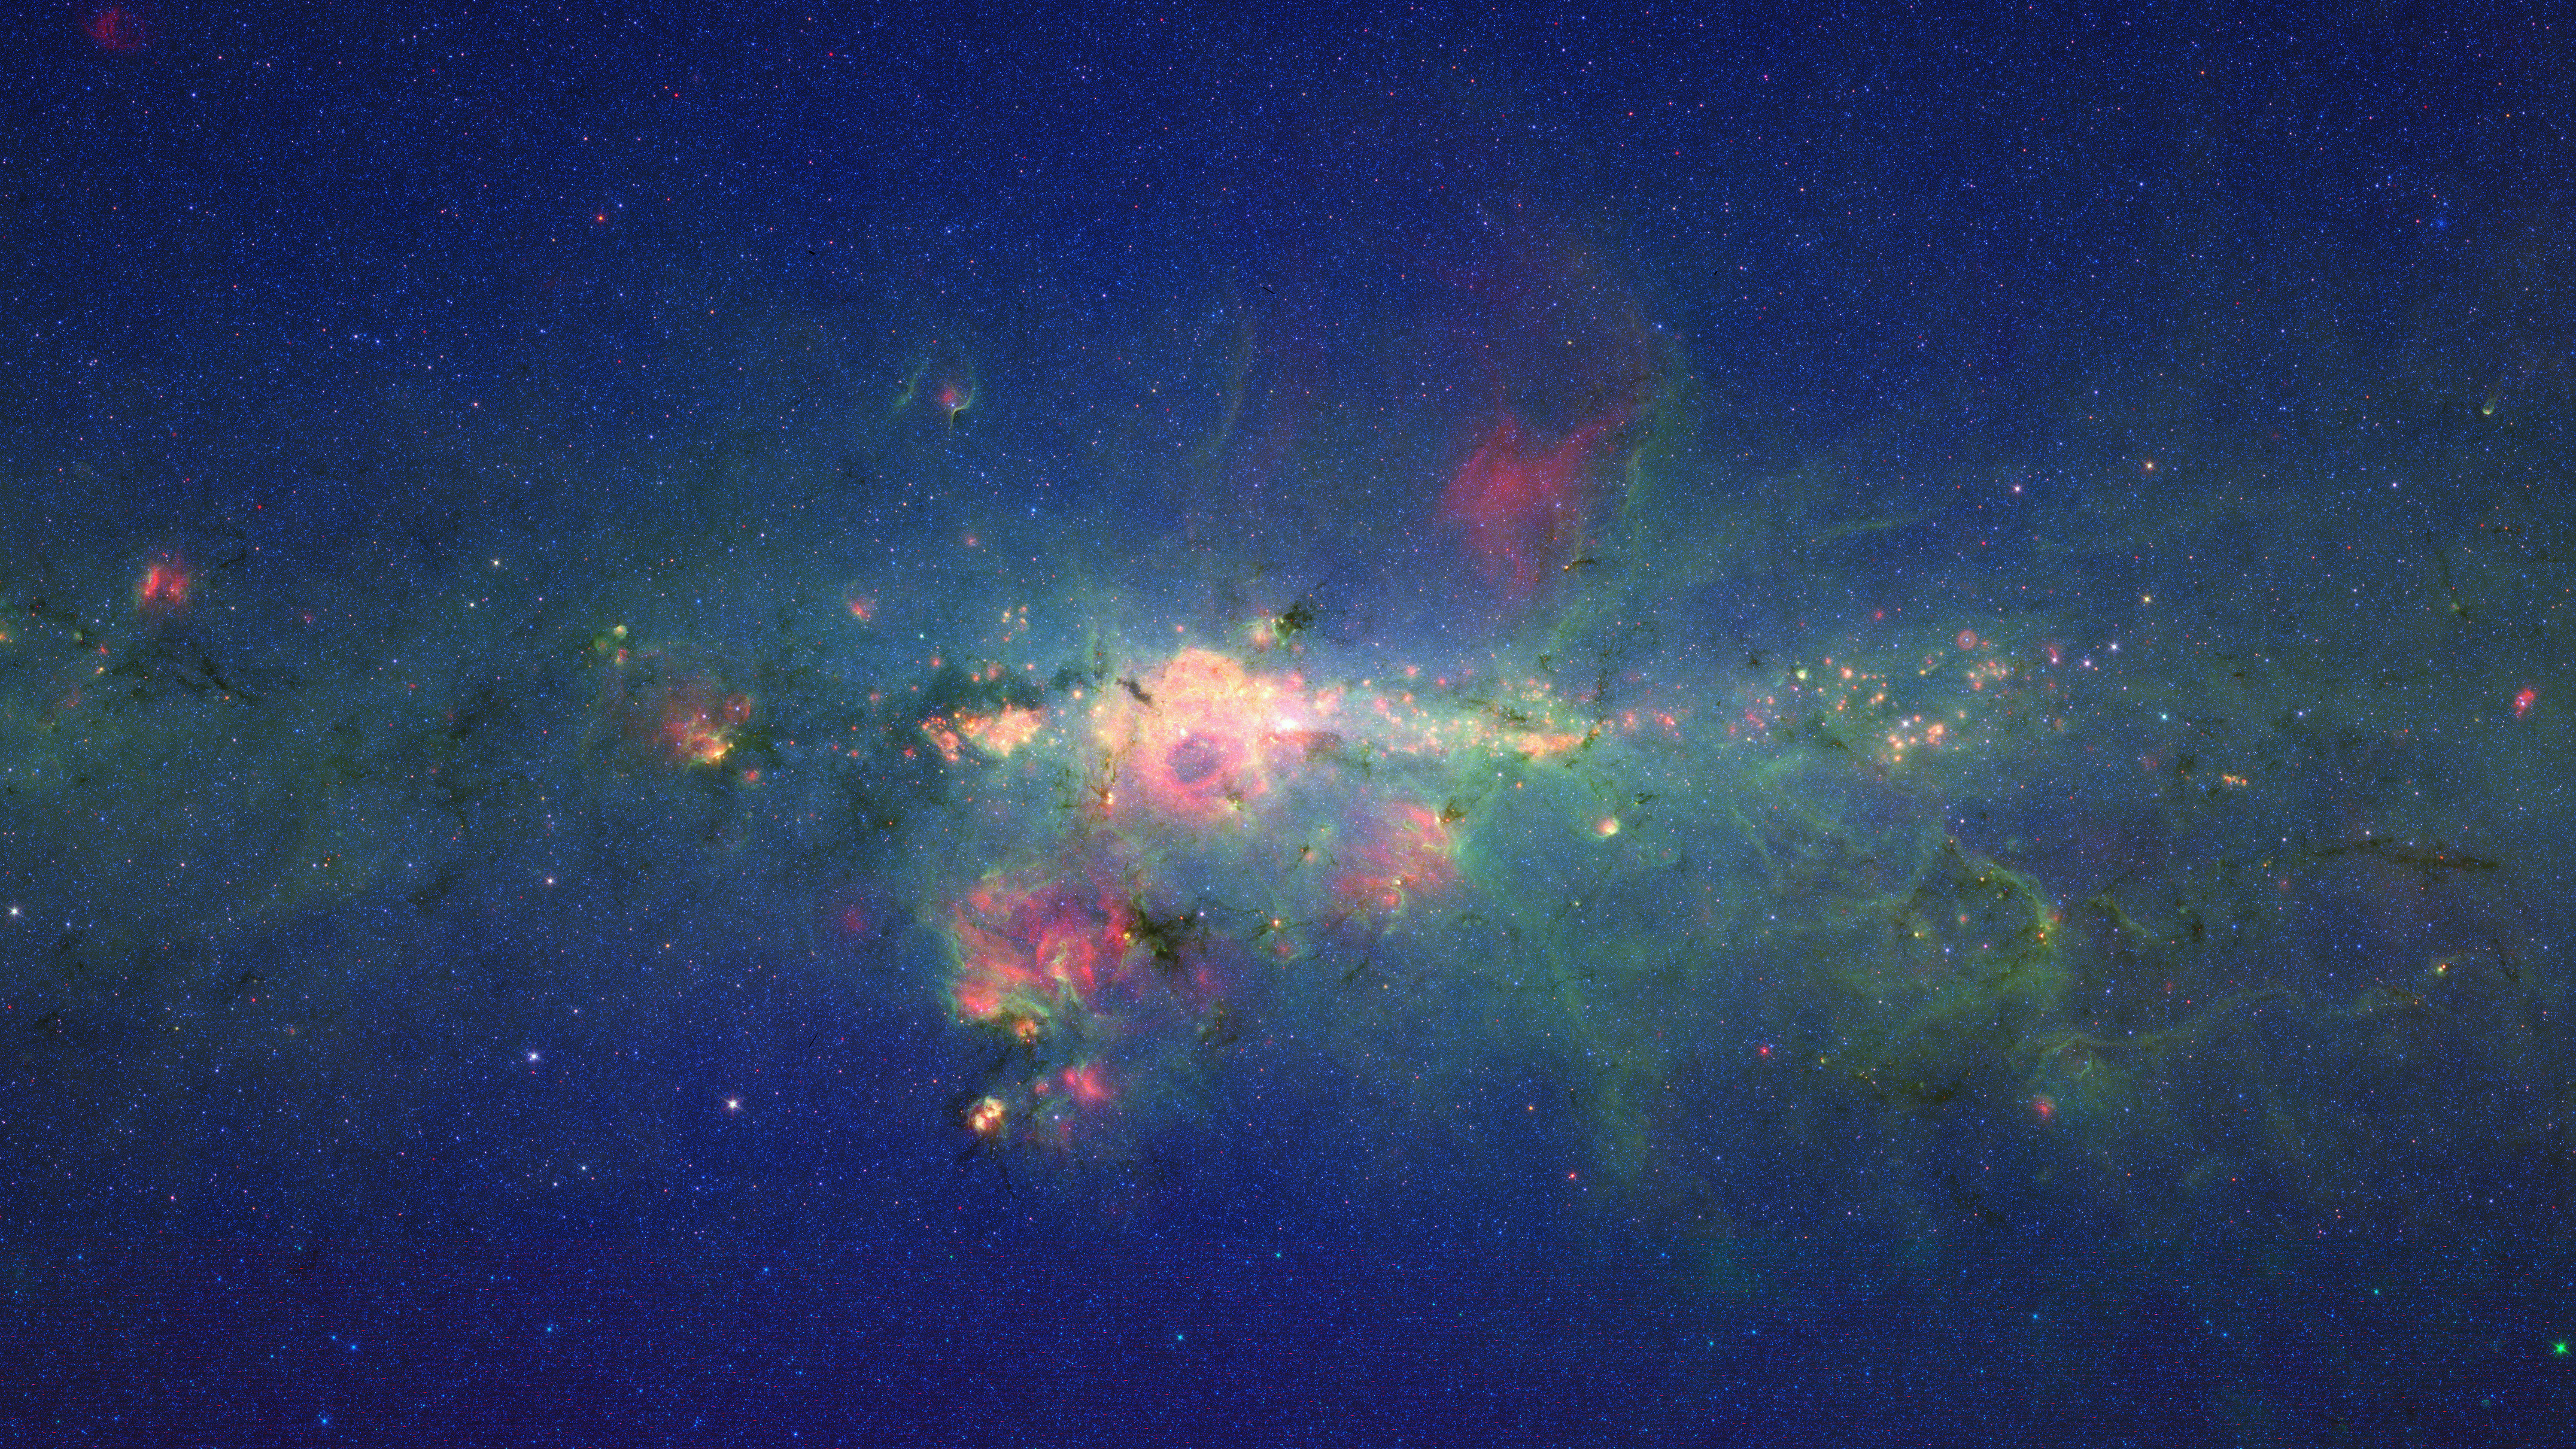 Stars Gather in 'Downtown' Milky Way: The region around the center of our Milky Way galaxy glows colorfully in this new version of an image taken by the Spitzer Space Telescope. The image is displayed (left picture) on a quarter-of-a-billion-pixel, high-definition 23-foot-wide (7-meter) LCD science visualization screen at NASA's Ames Research Center in Moffett Field, Calif. Credit: NASA/Ames/JPL-Caltech